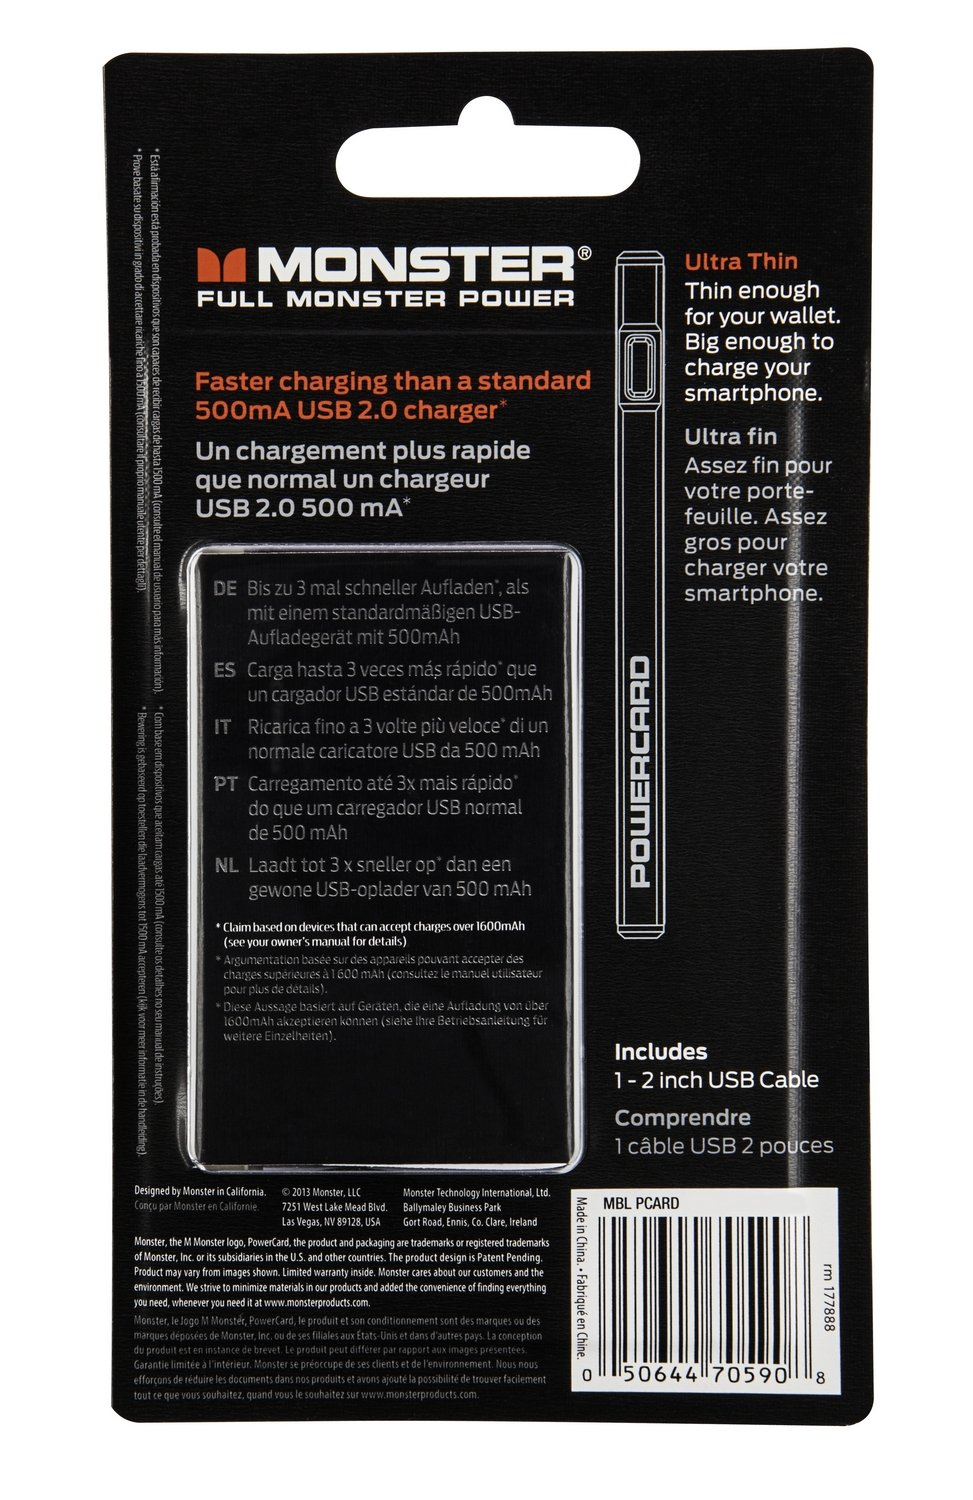 Amazon.com: Monster Cable Mobile PowerCard Portable Battery (Slate Black) (Discontinued by Manufacturer): Cell Phones & Accessories